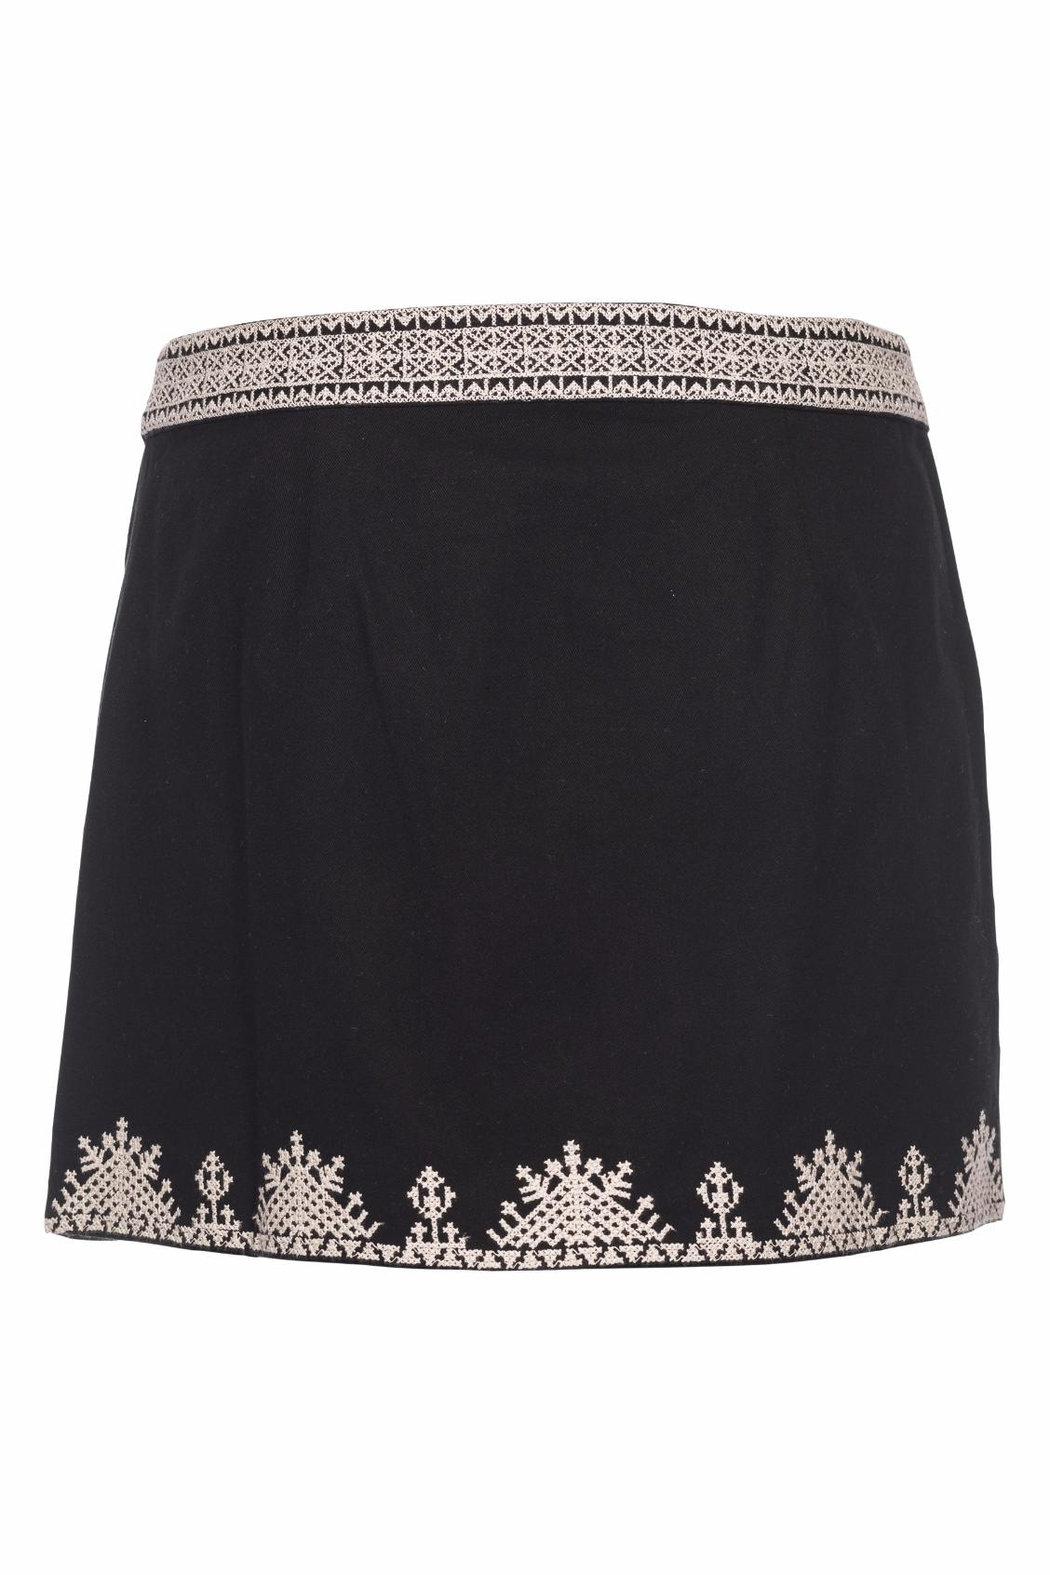 Joie Genovefa Skirt Embroidered - Front Full Image